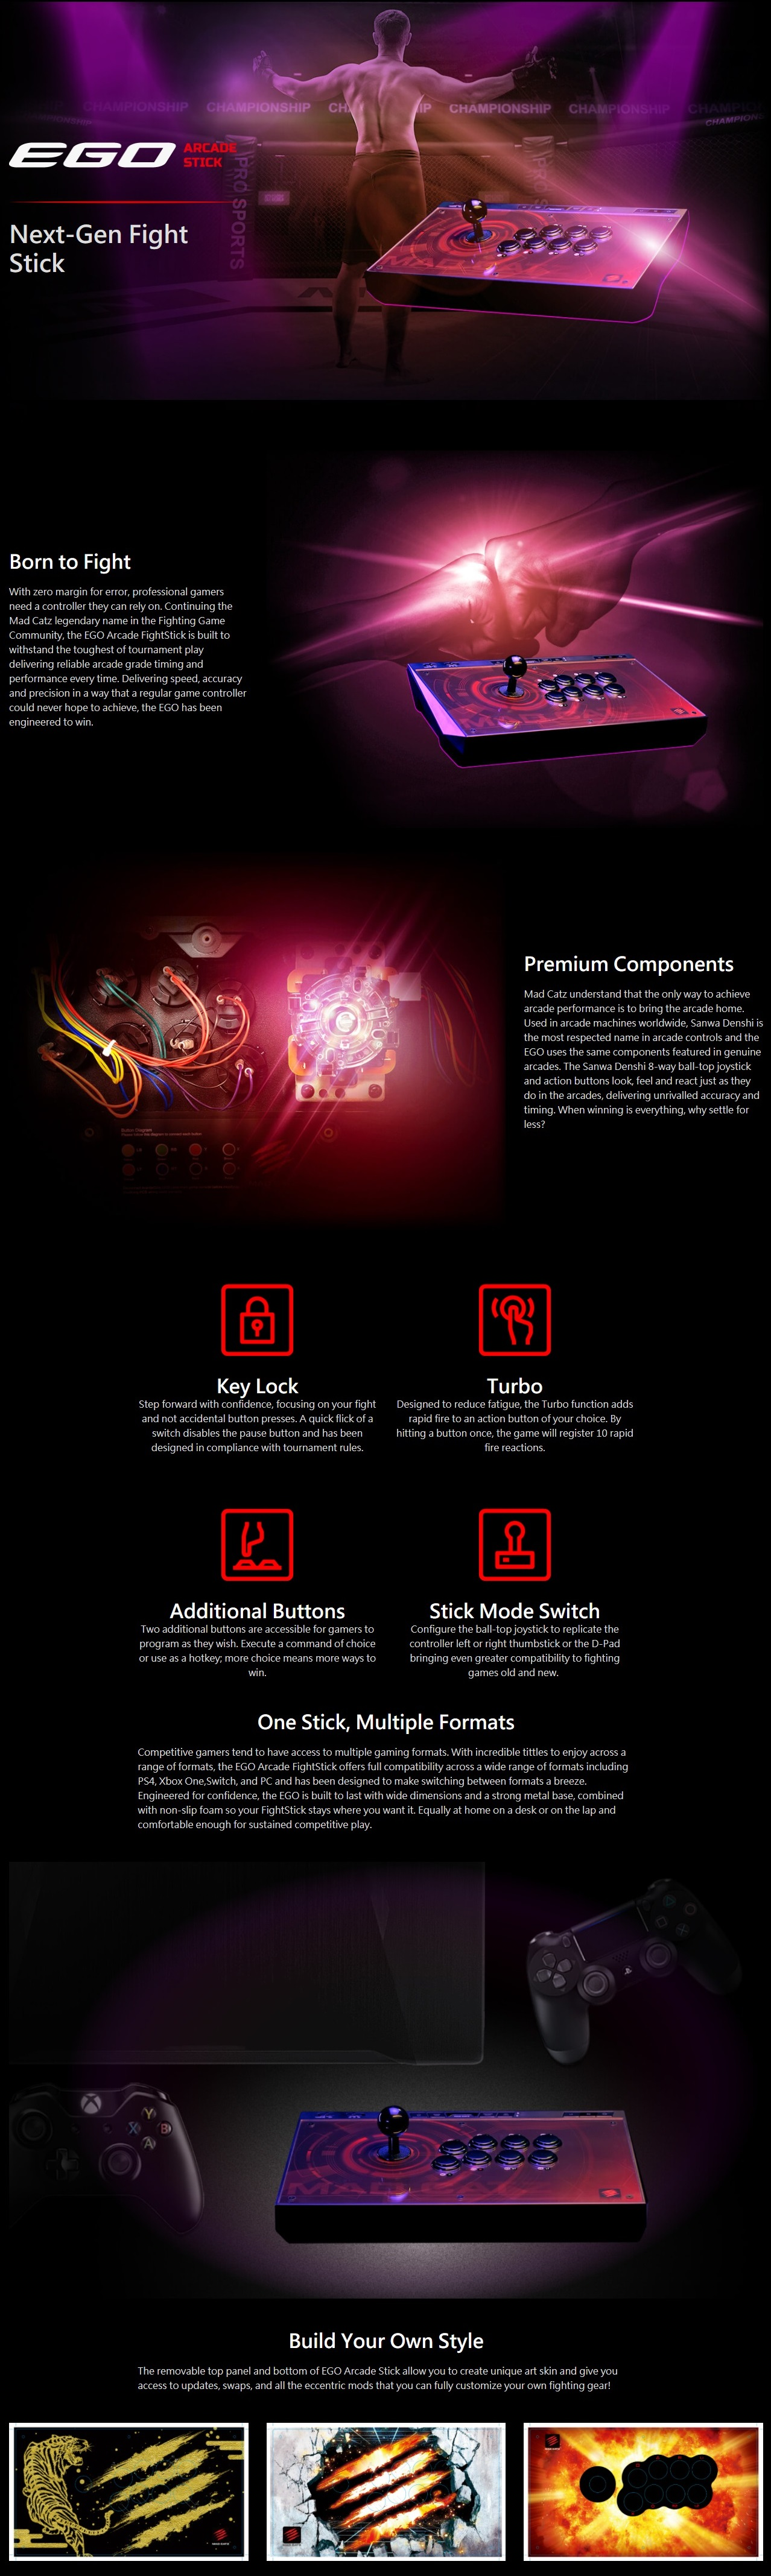 A large marketing image providing additional information about the product Mad Catz E.G.O. Arcade Stick - Additional alt info not provided